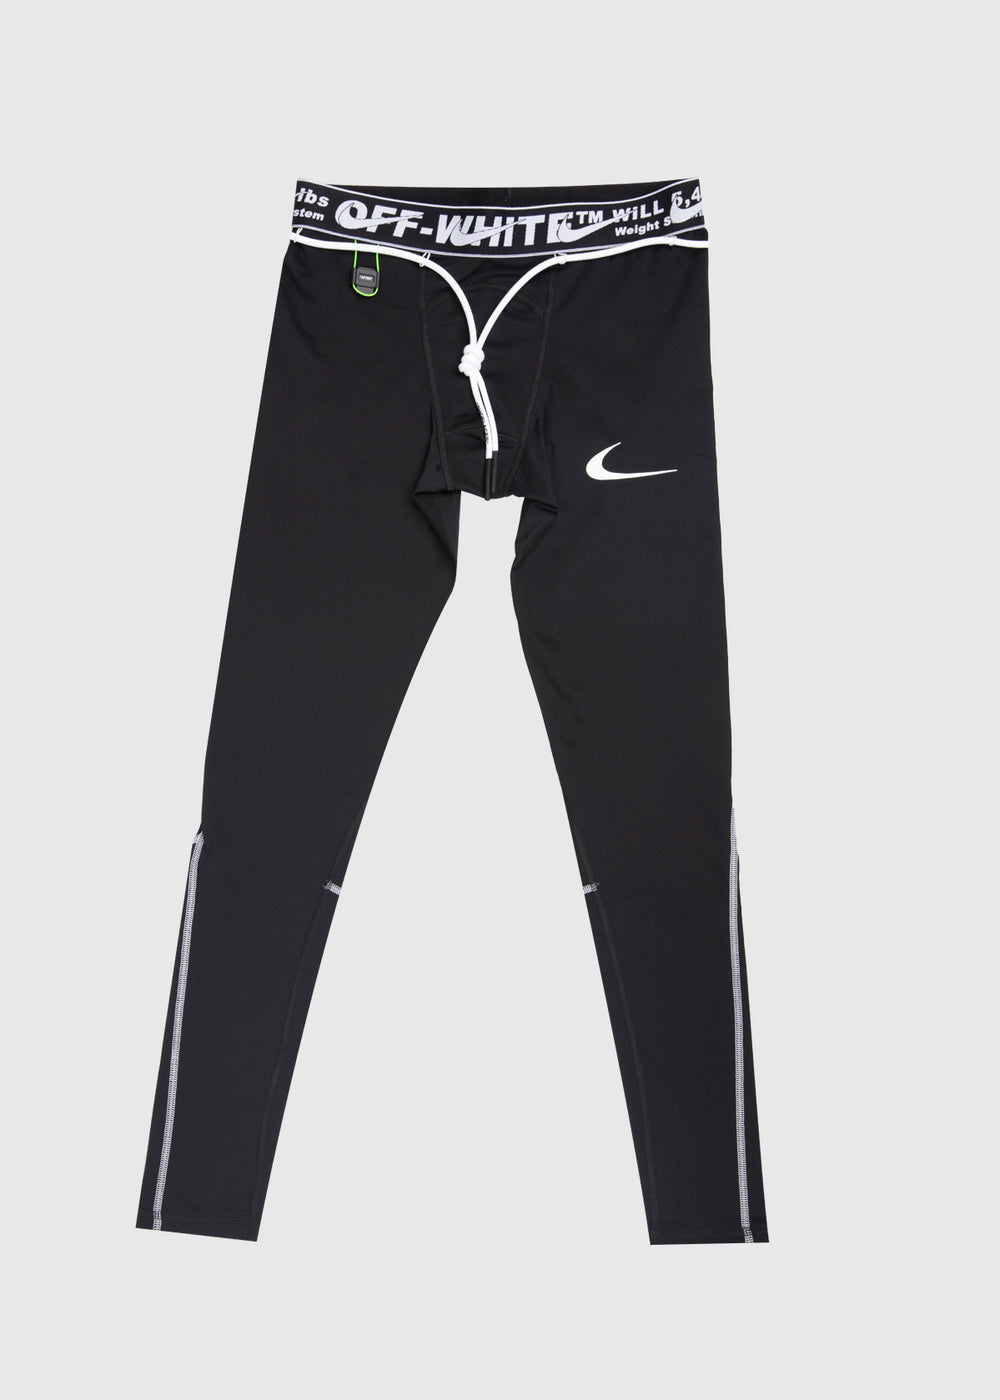 m-nike-ow-tight-cn5532-010-blk-1